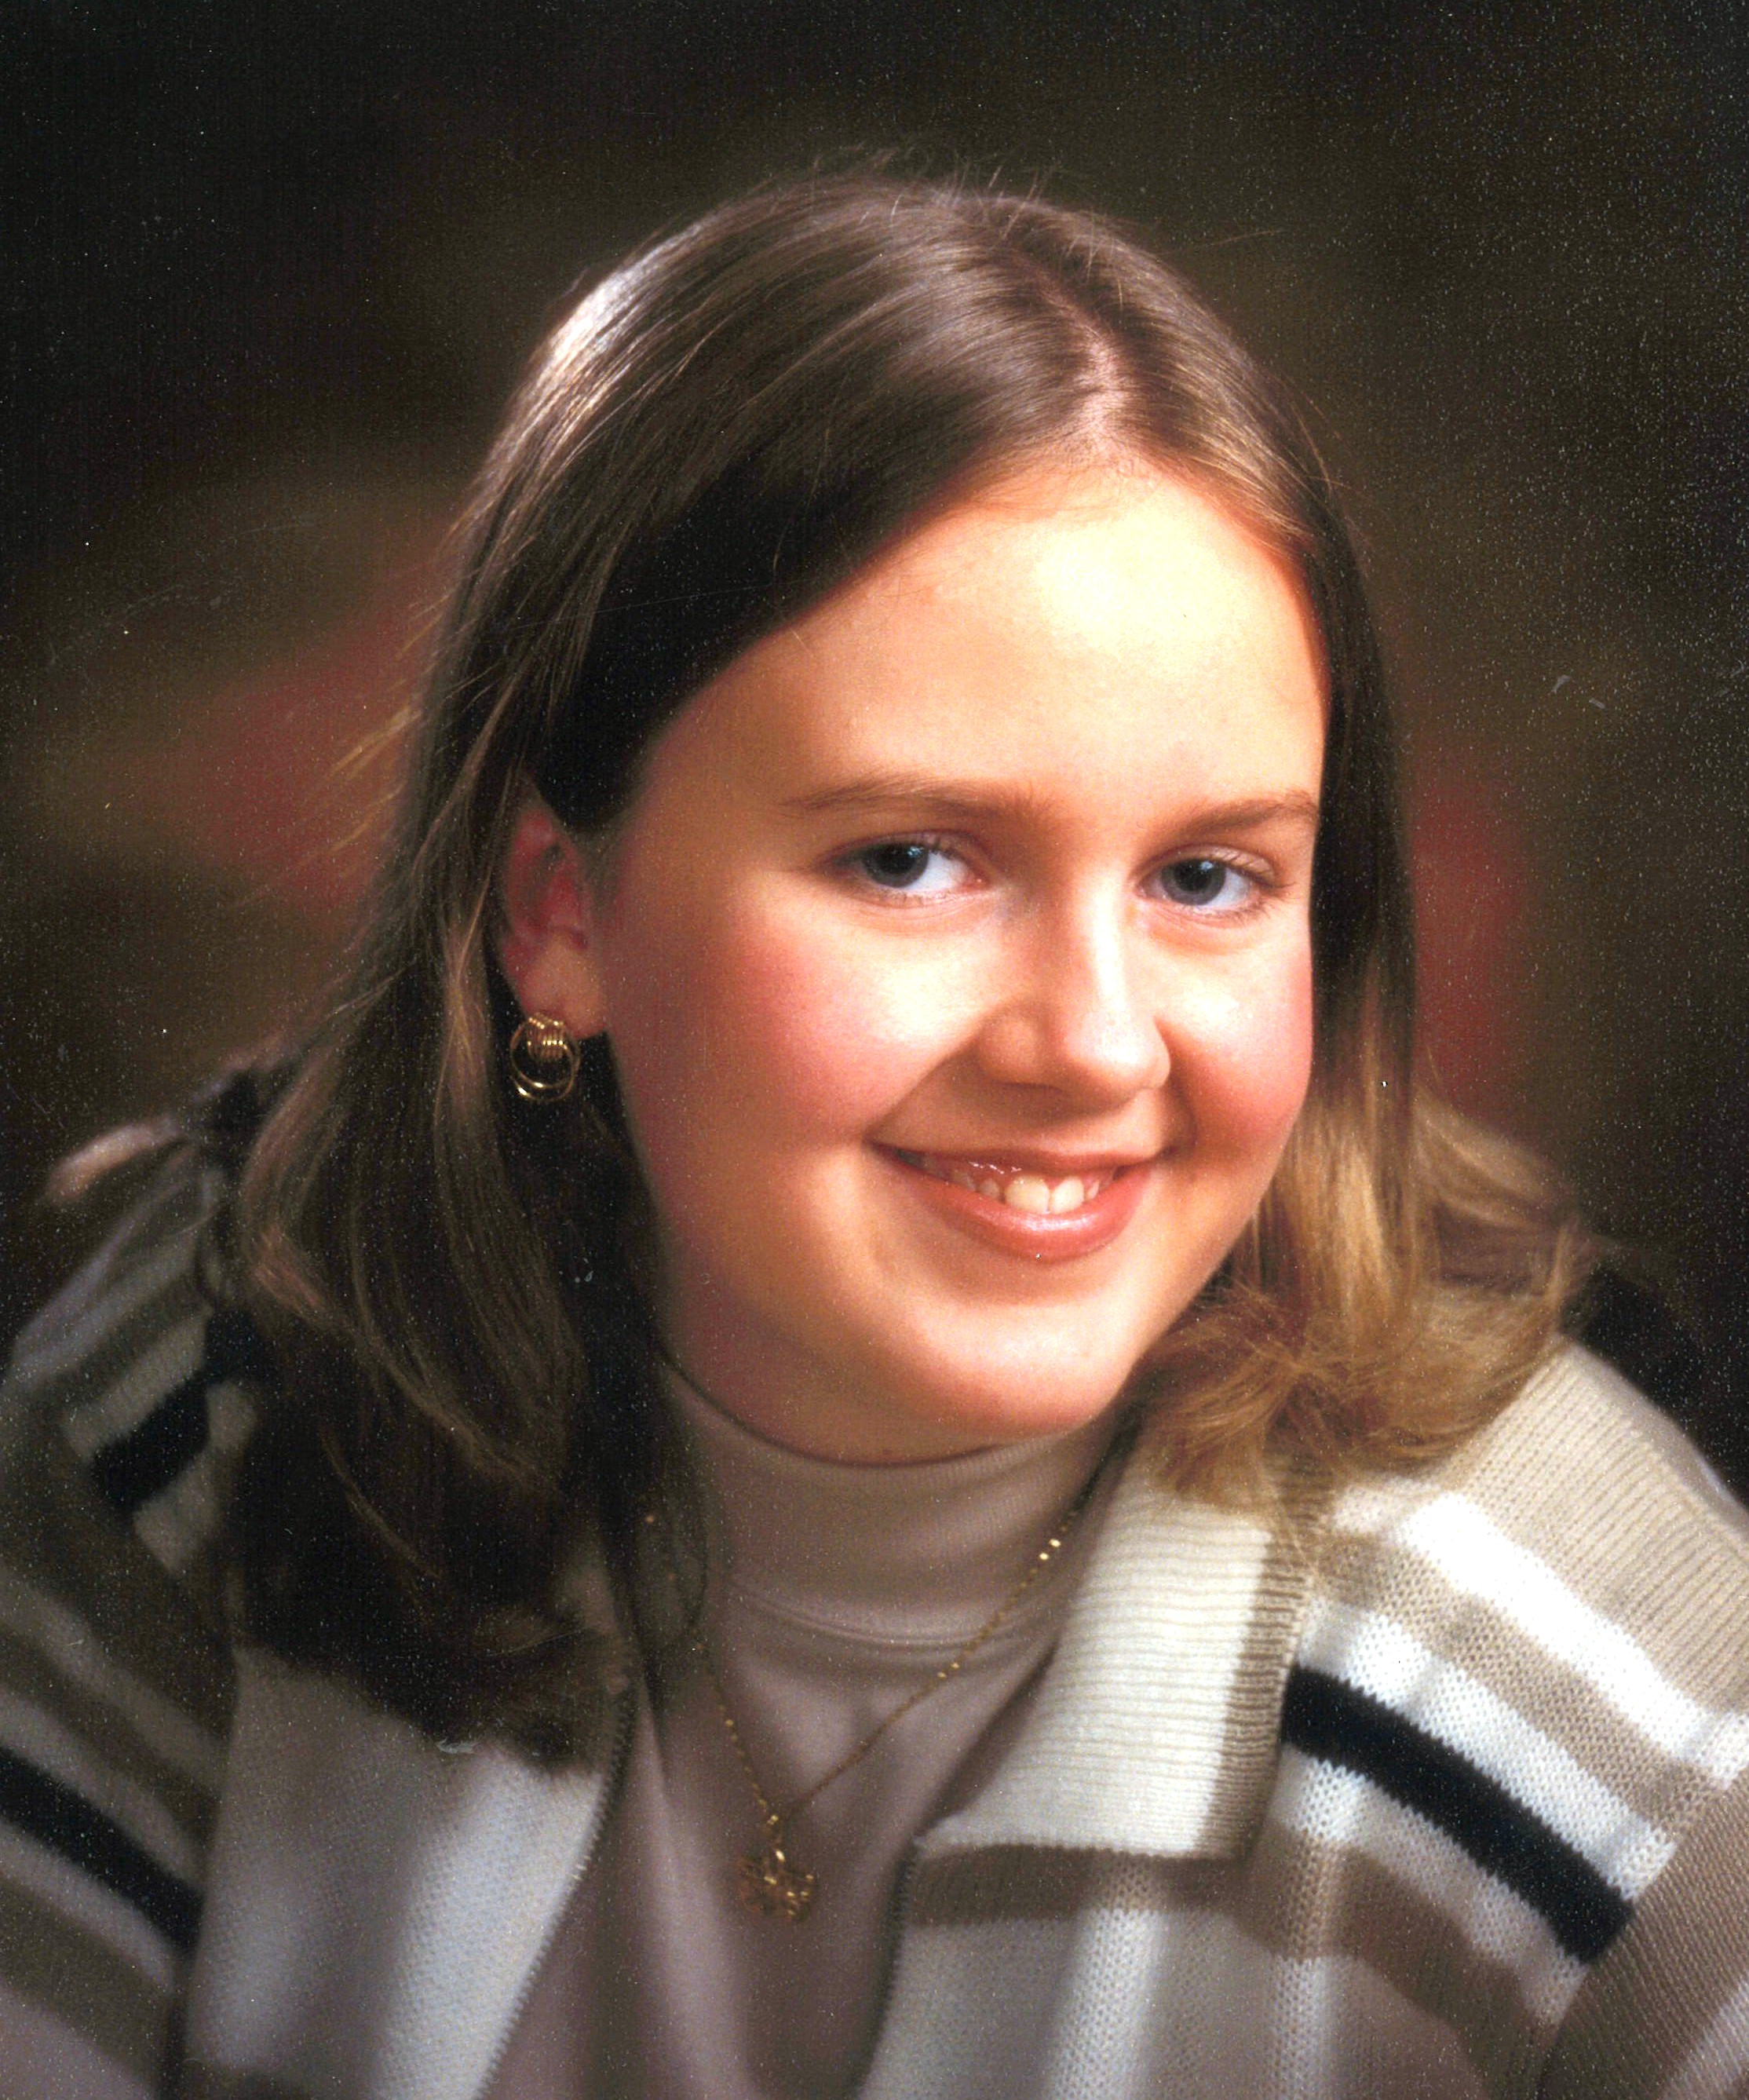 Rebecca Noelle Lehmkuhl, 38, of Lincoln, Nebraska